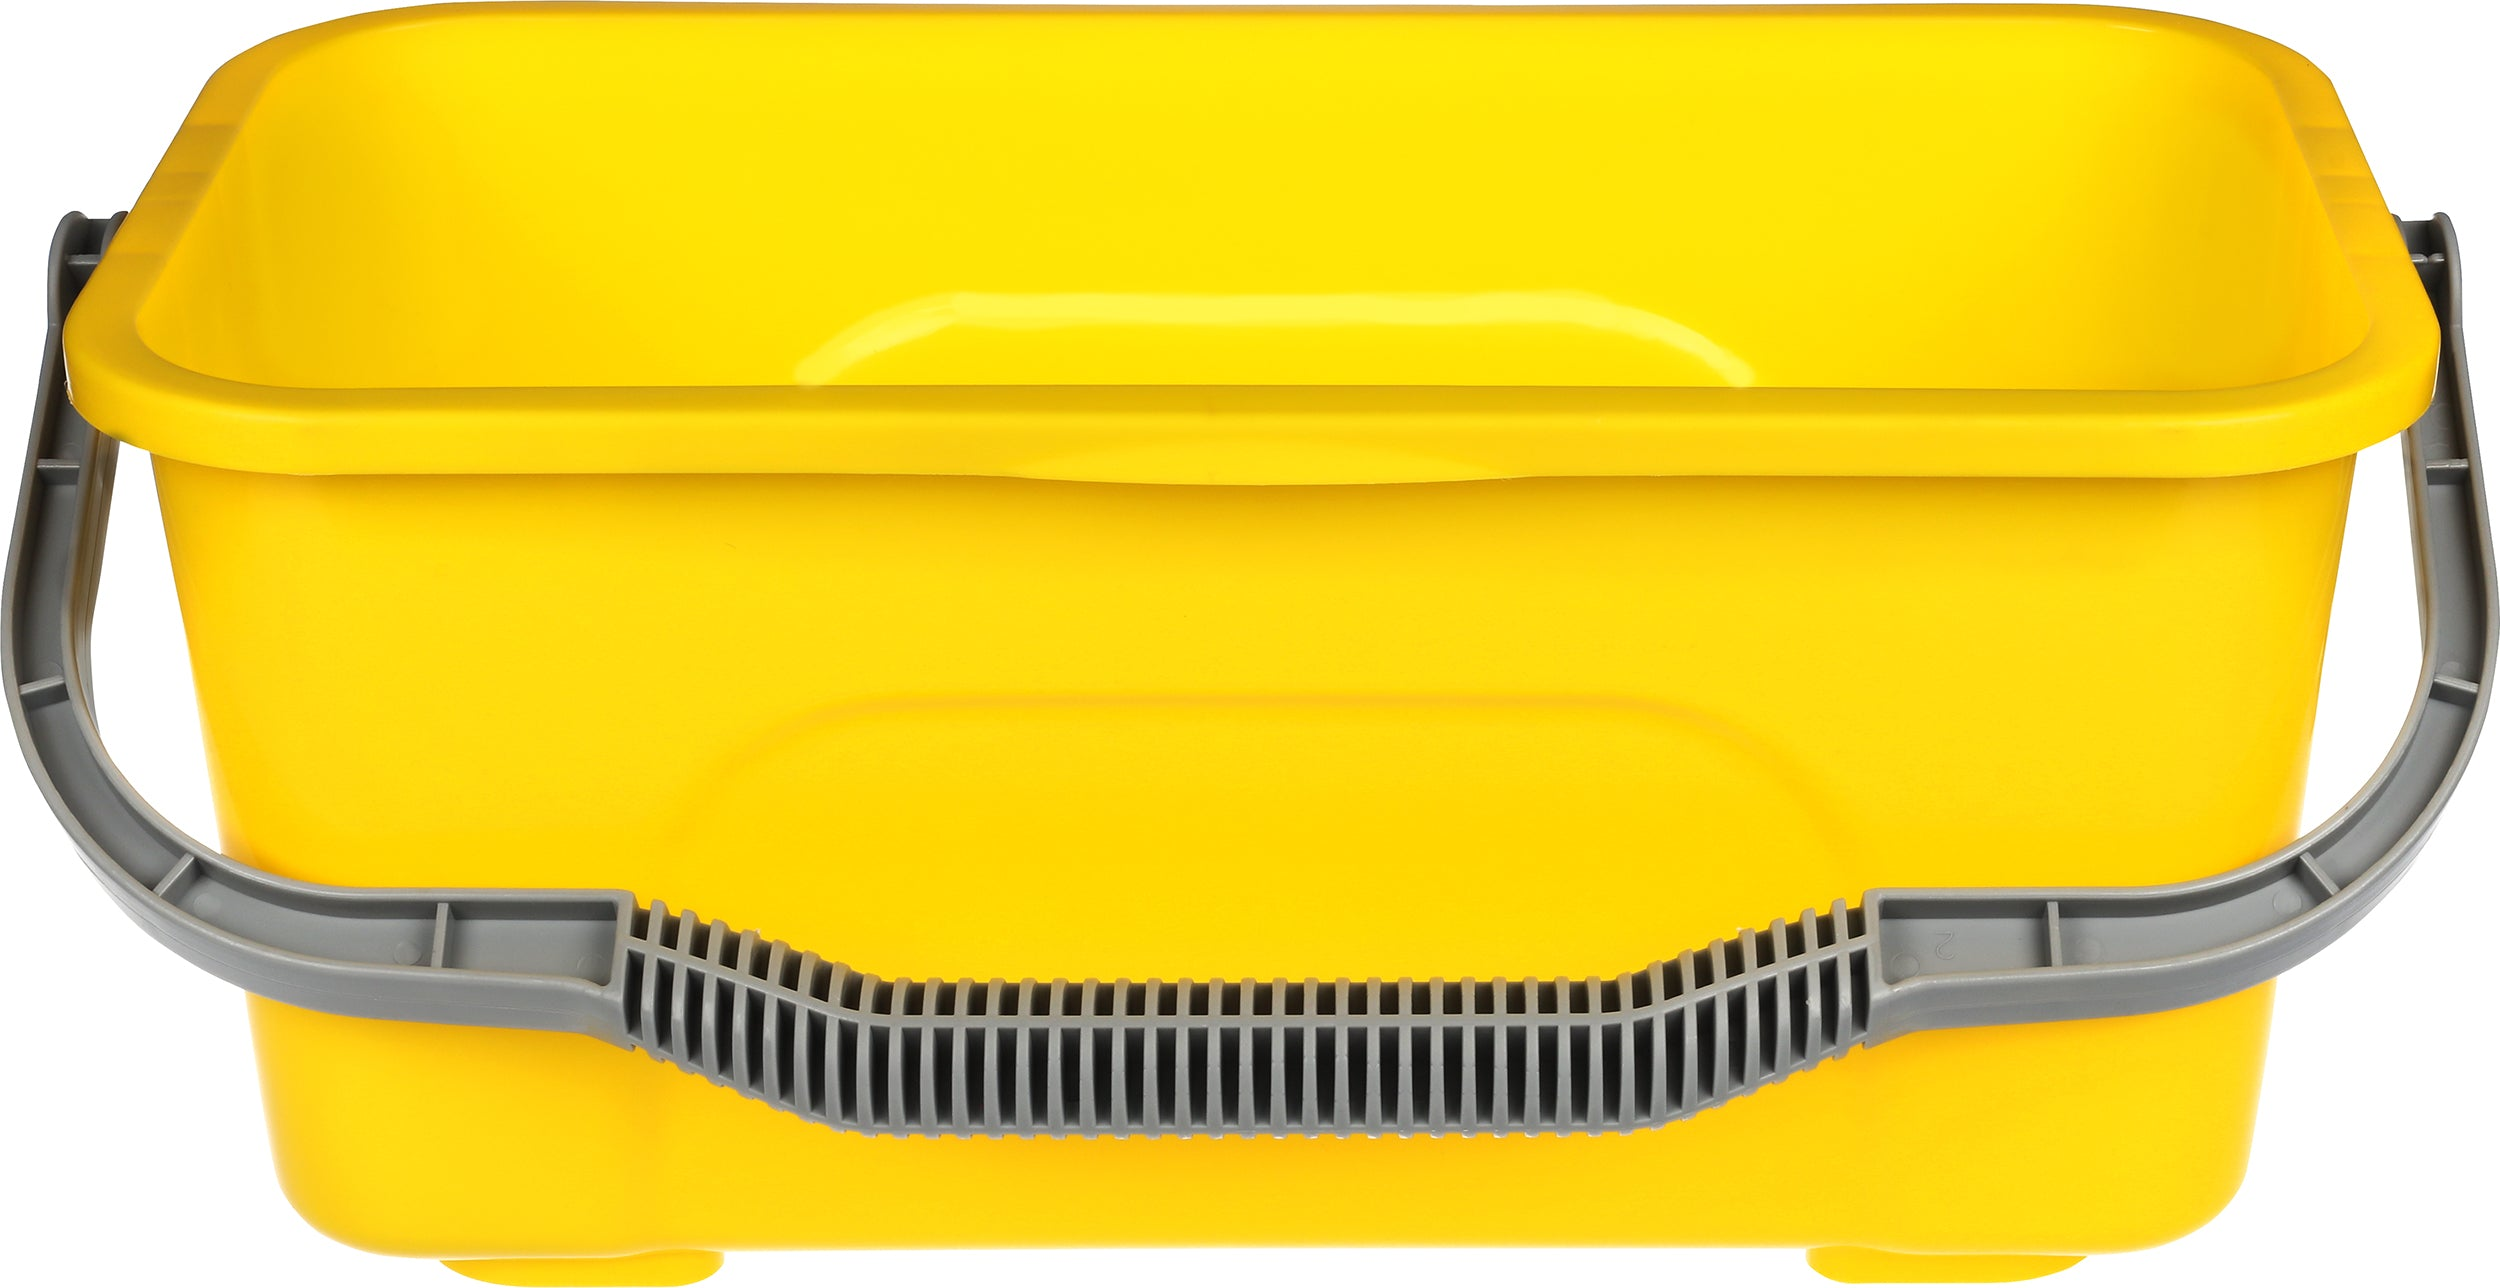 FILTA WINDOW & FLAT MOP BUCKET YELLOW 12L